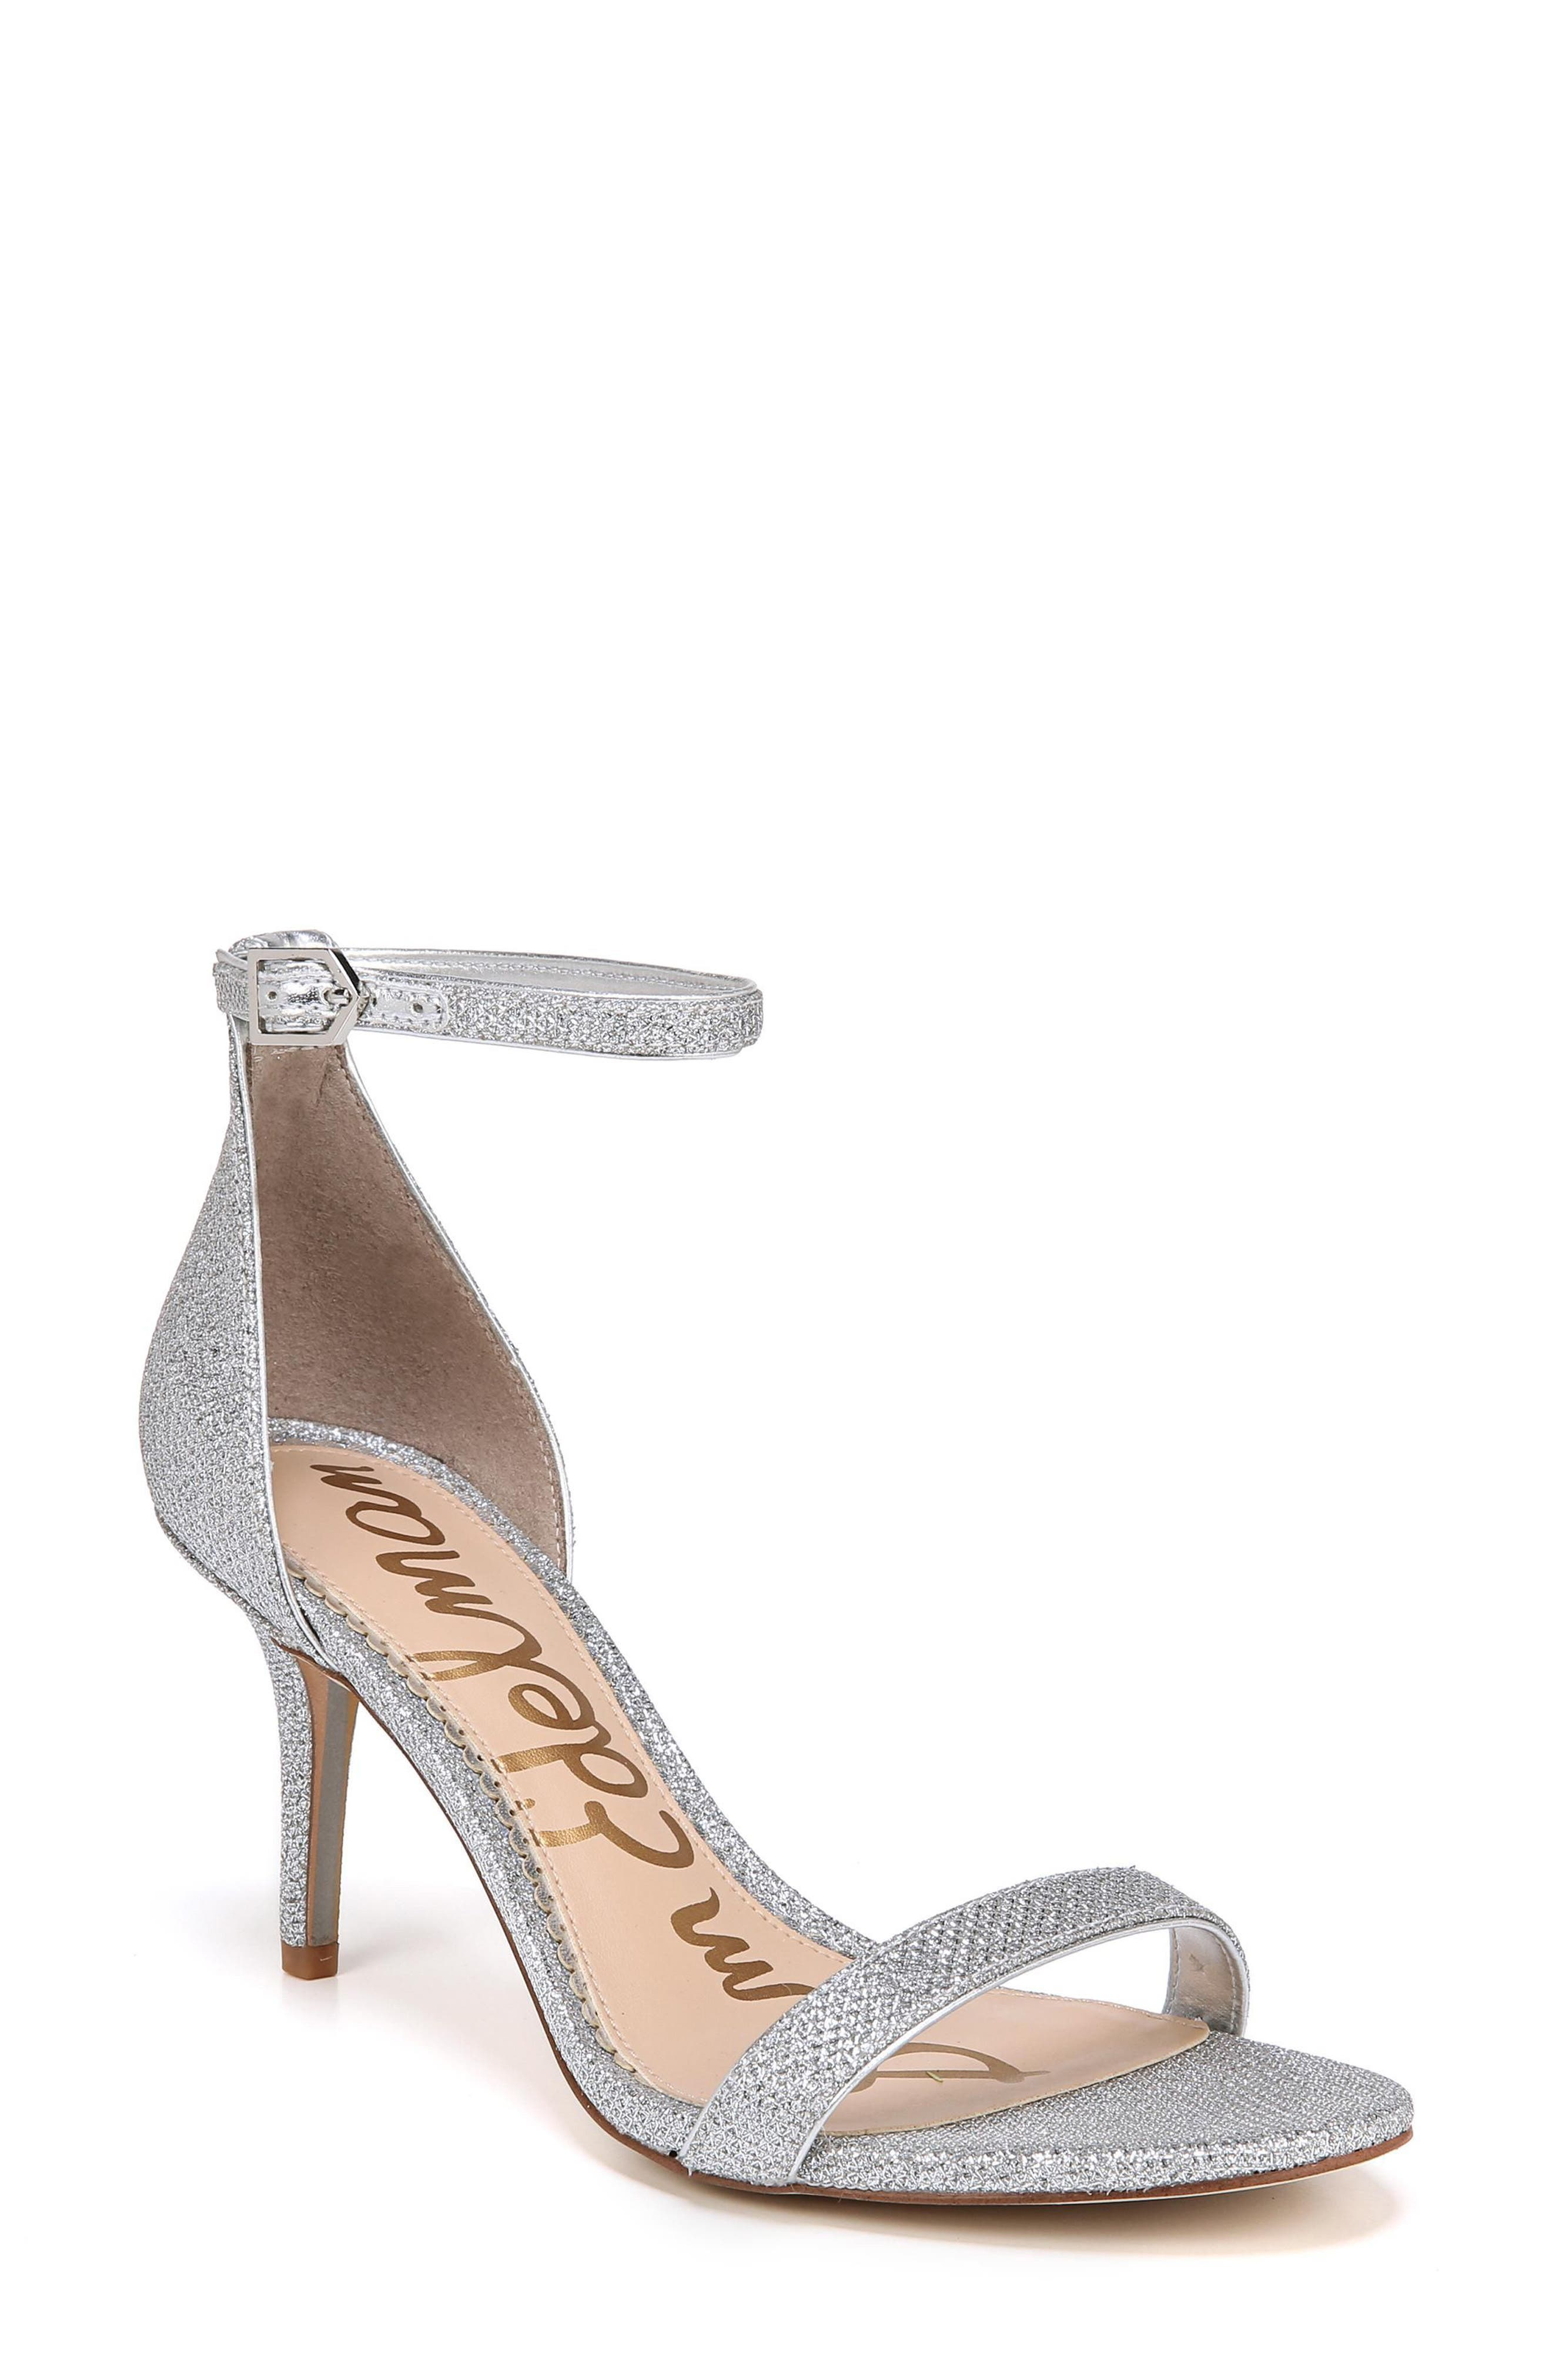 'Patti' Ankle Strap Sandal,                             Main thumbnail 1, color,                             SOFT SILVER FABRIC